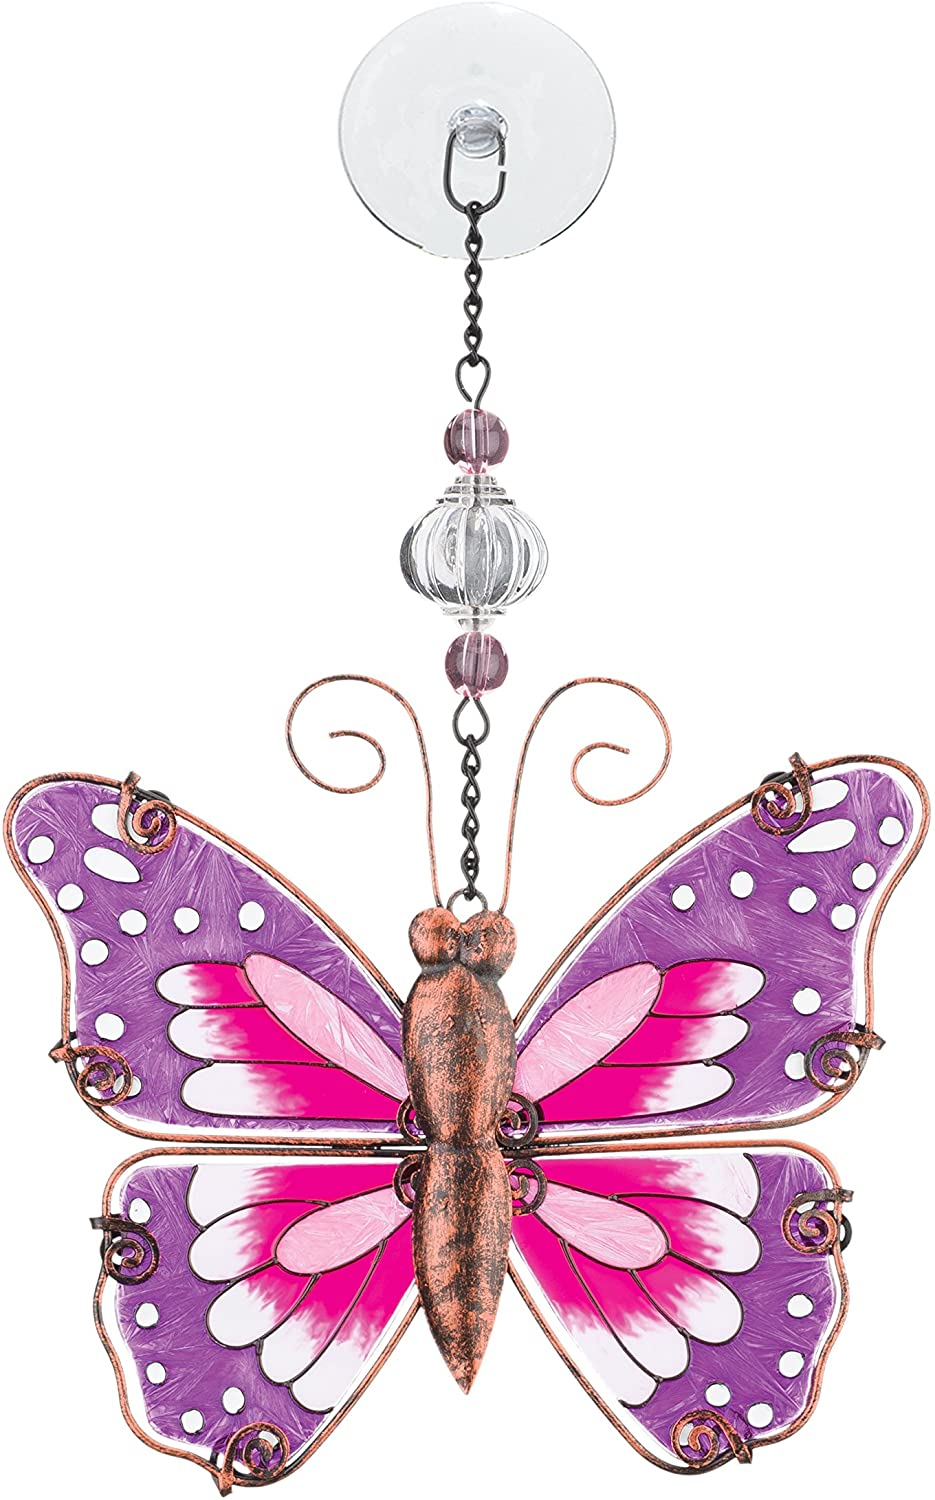 discPINK BUTTERFLY SUNCATCHER